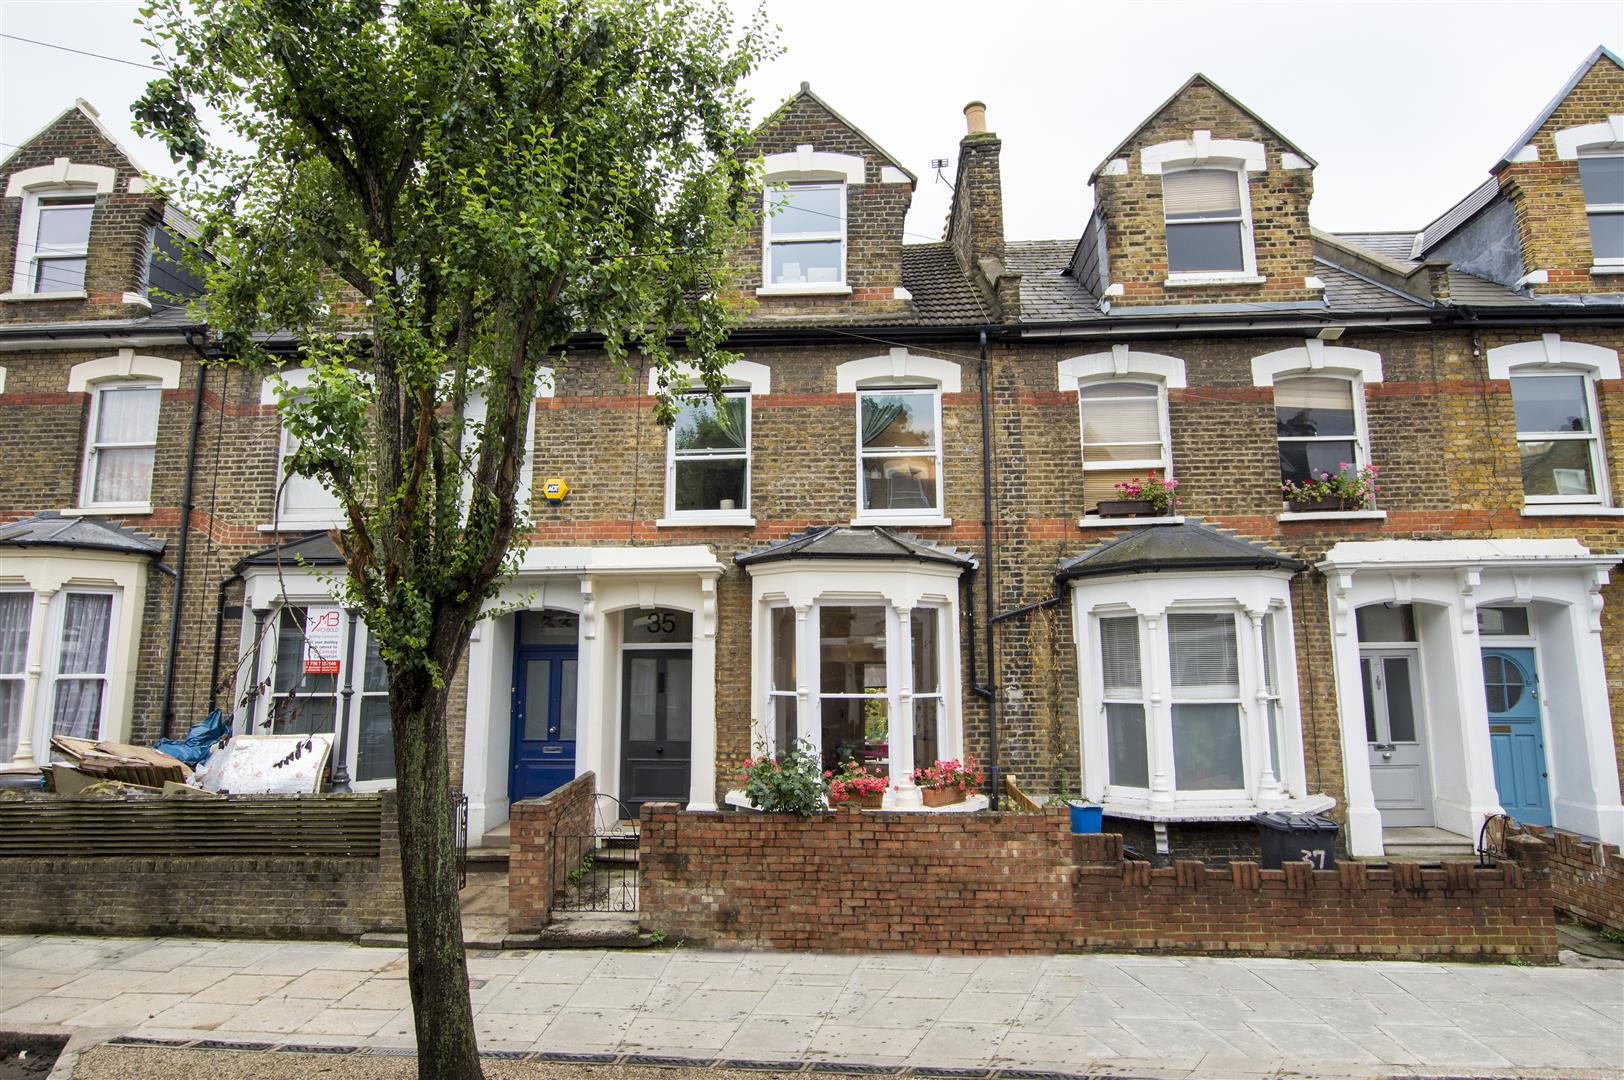 4 Bedrooms House for sale in Brighton Road